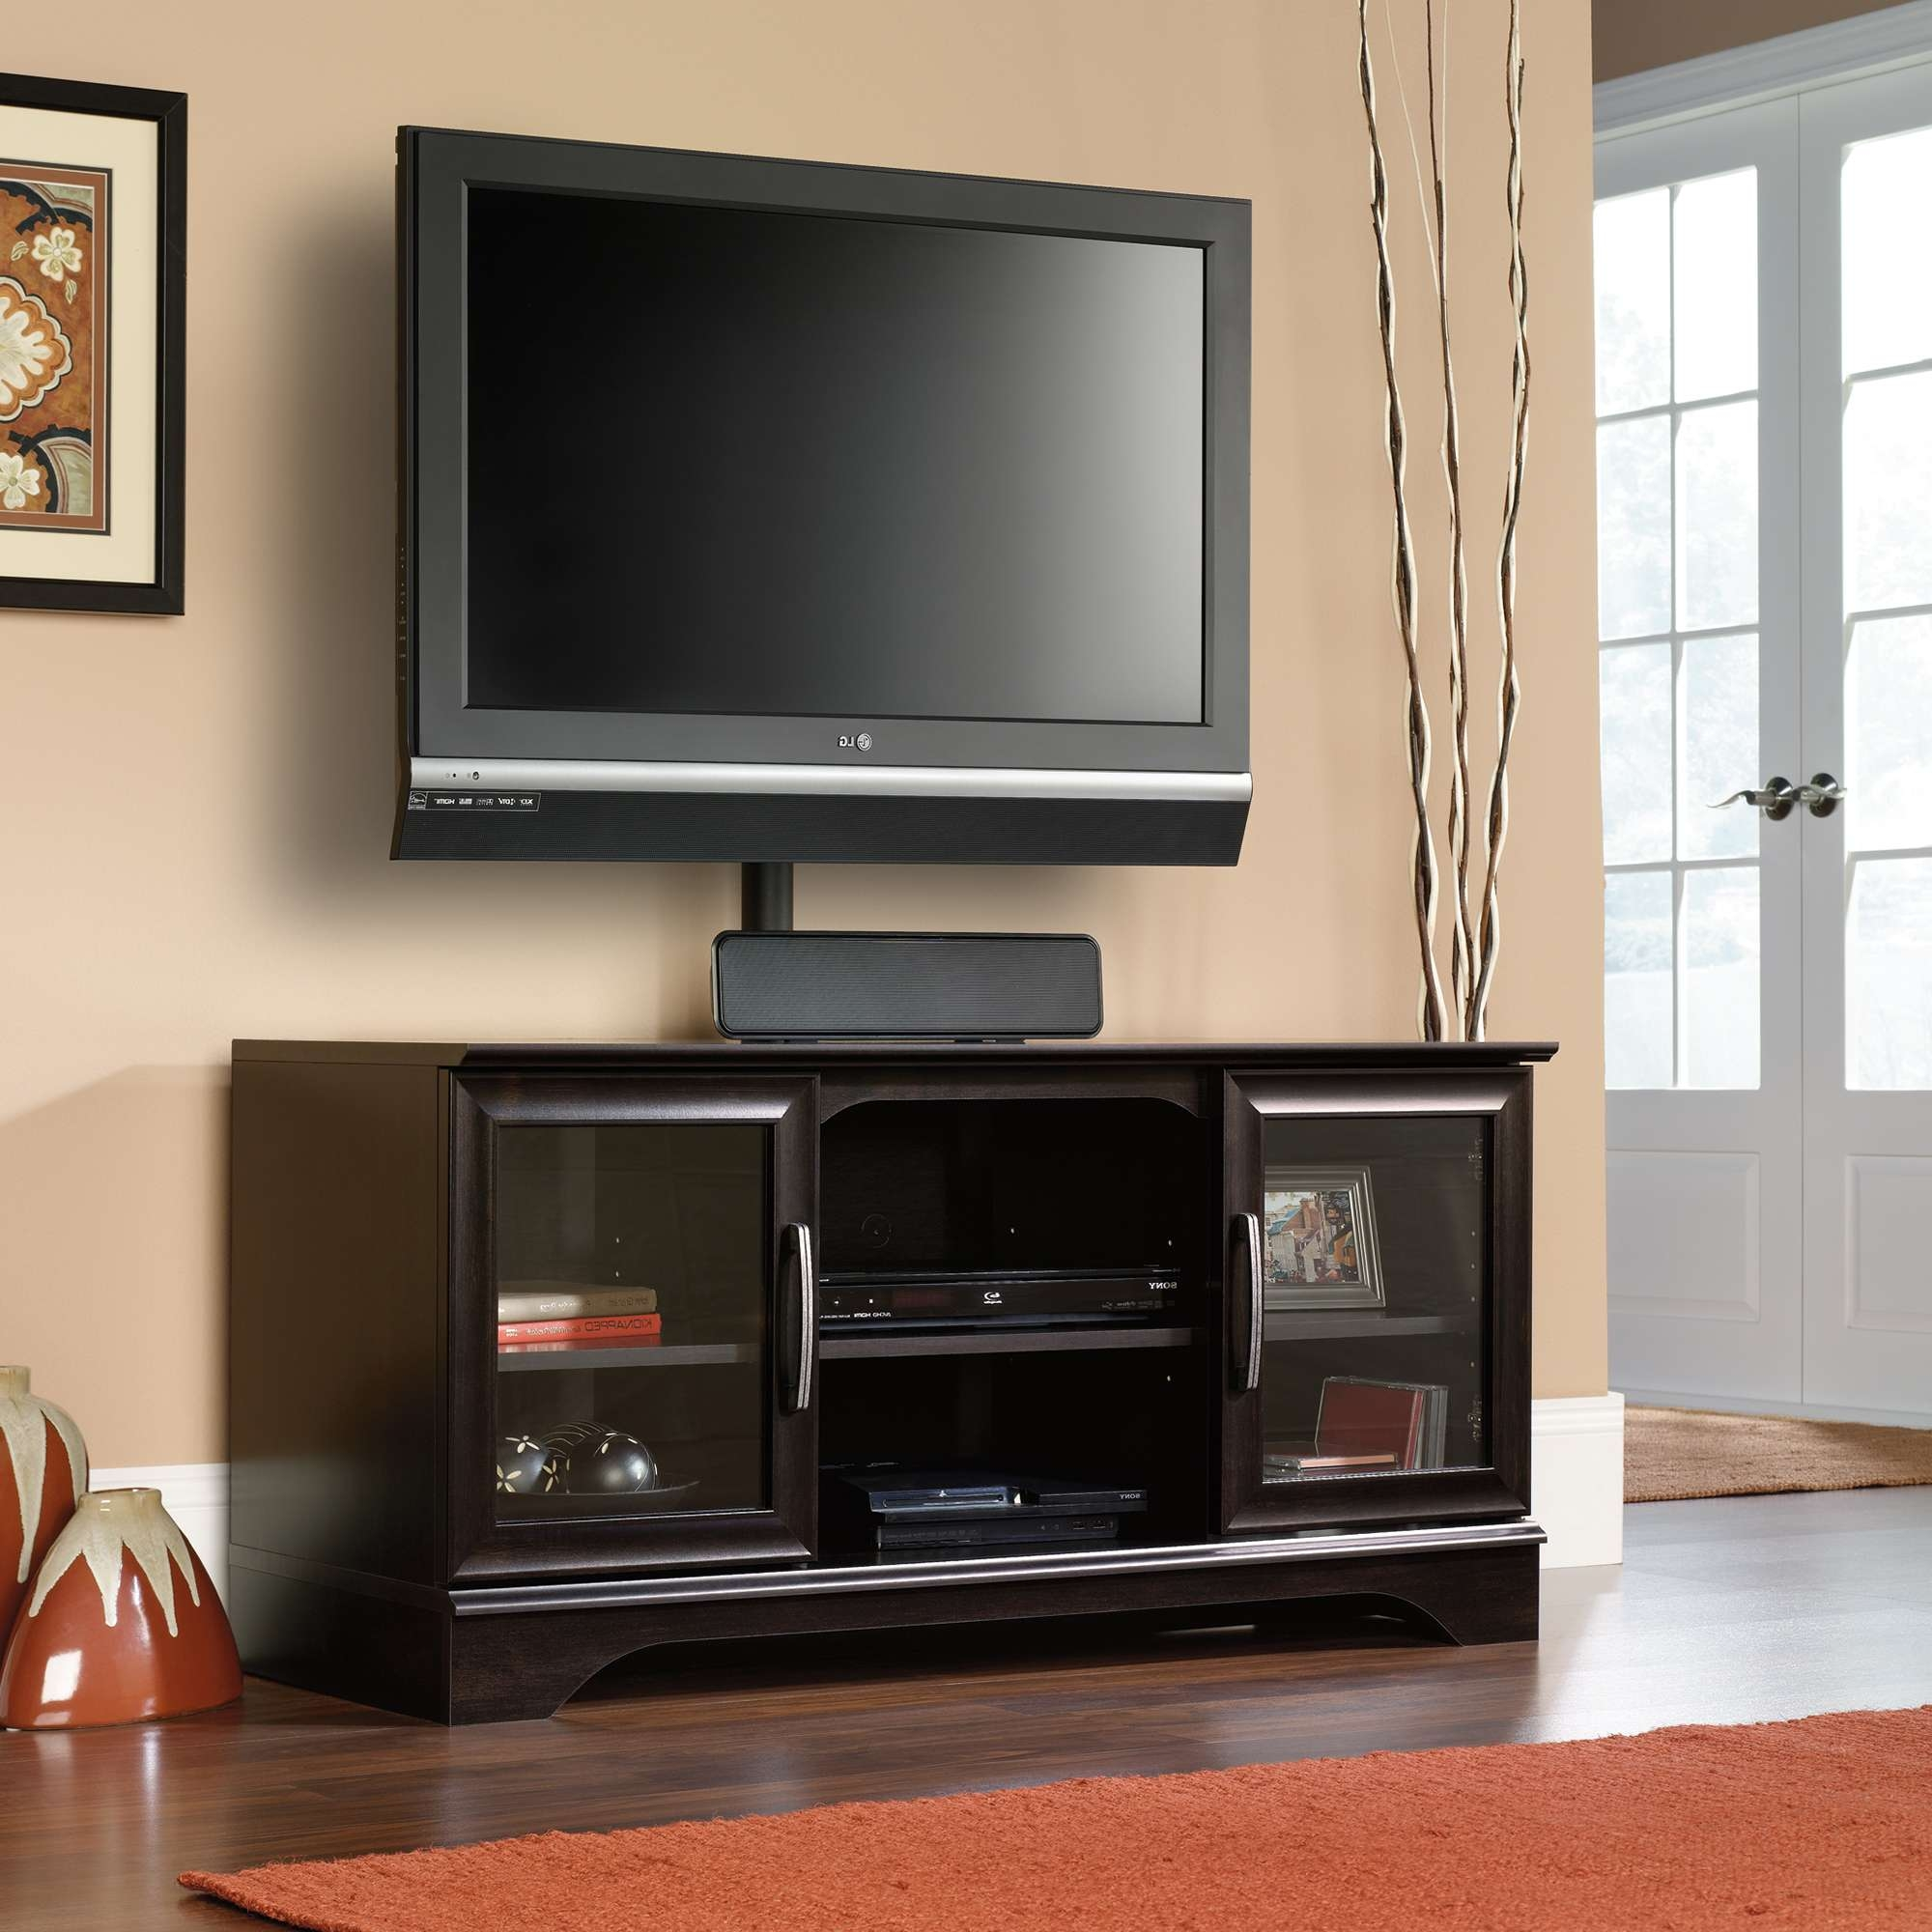 Wood Tv Standh Mount Solid Mountwood Swivel Storage Stands Flat Intended For Solid Wood Black Tv Stands (View 4 of 15)